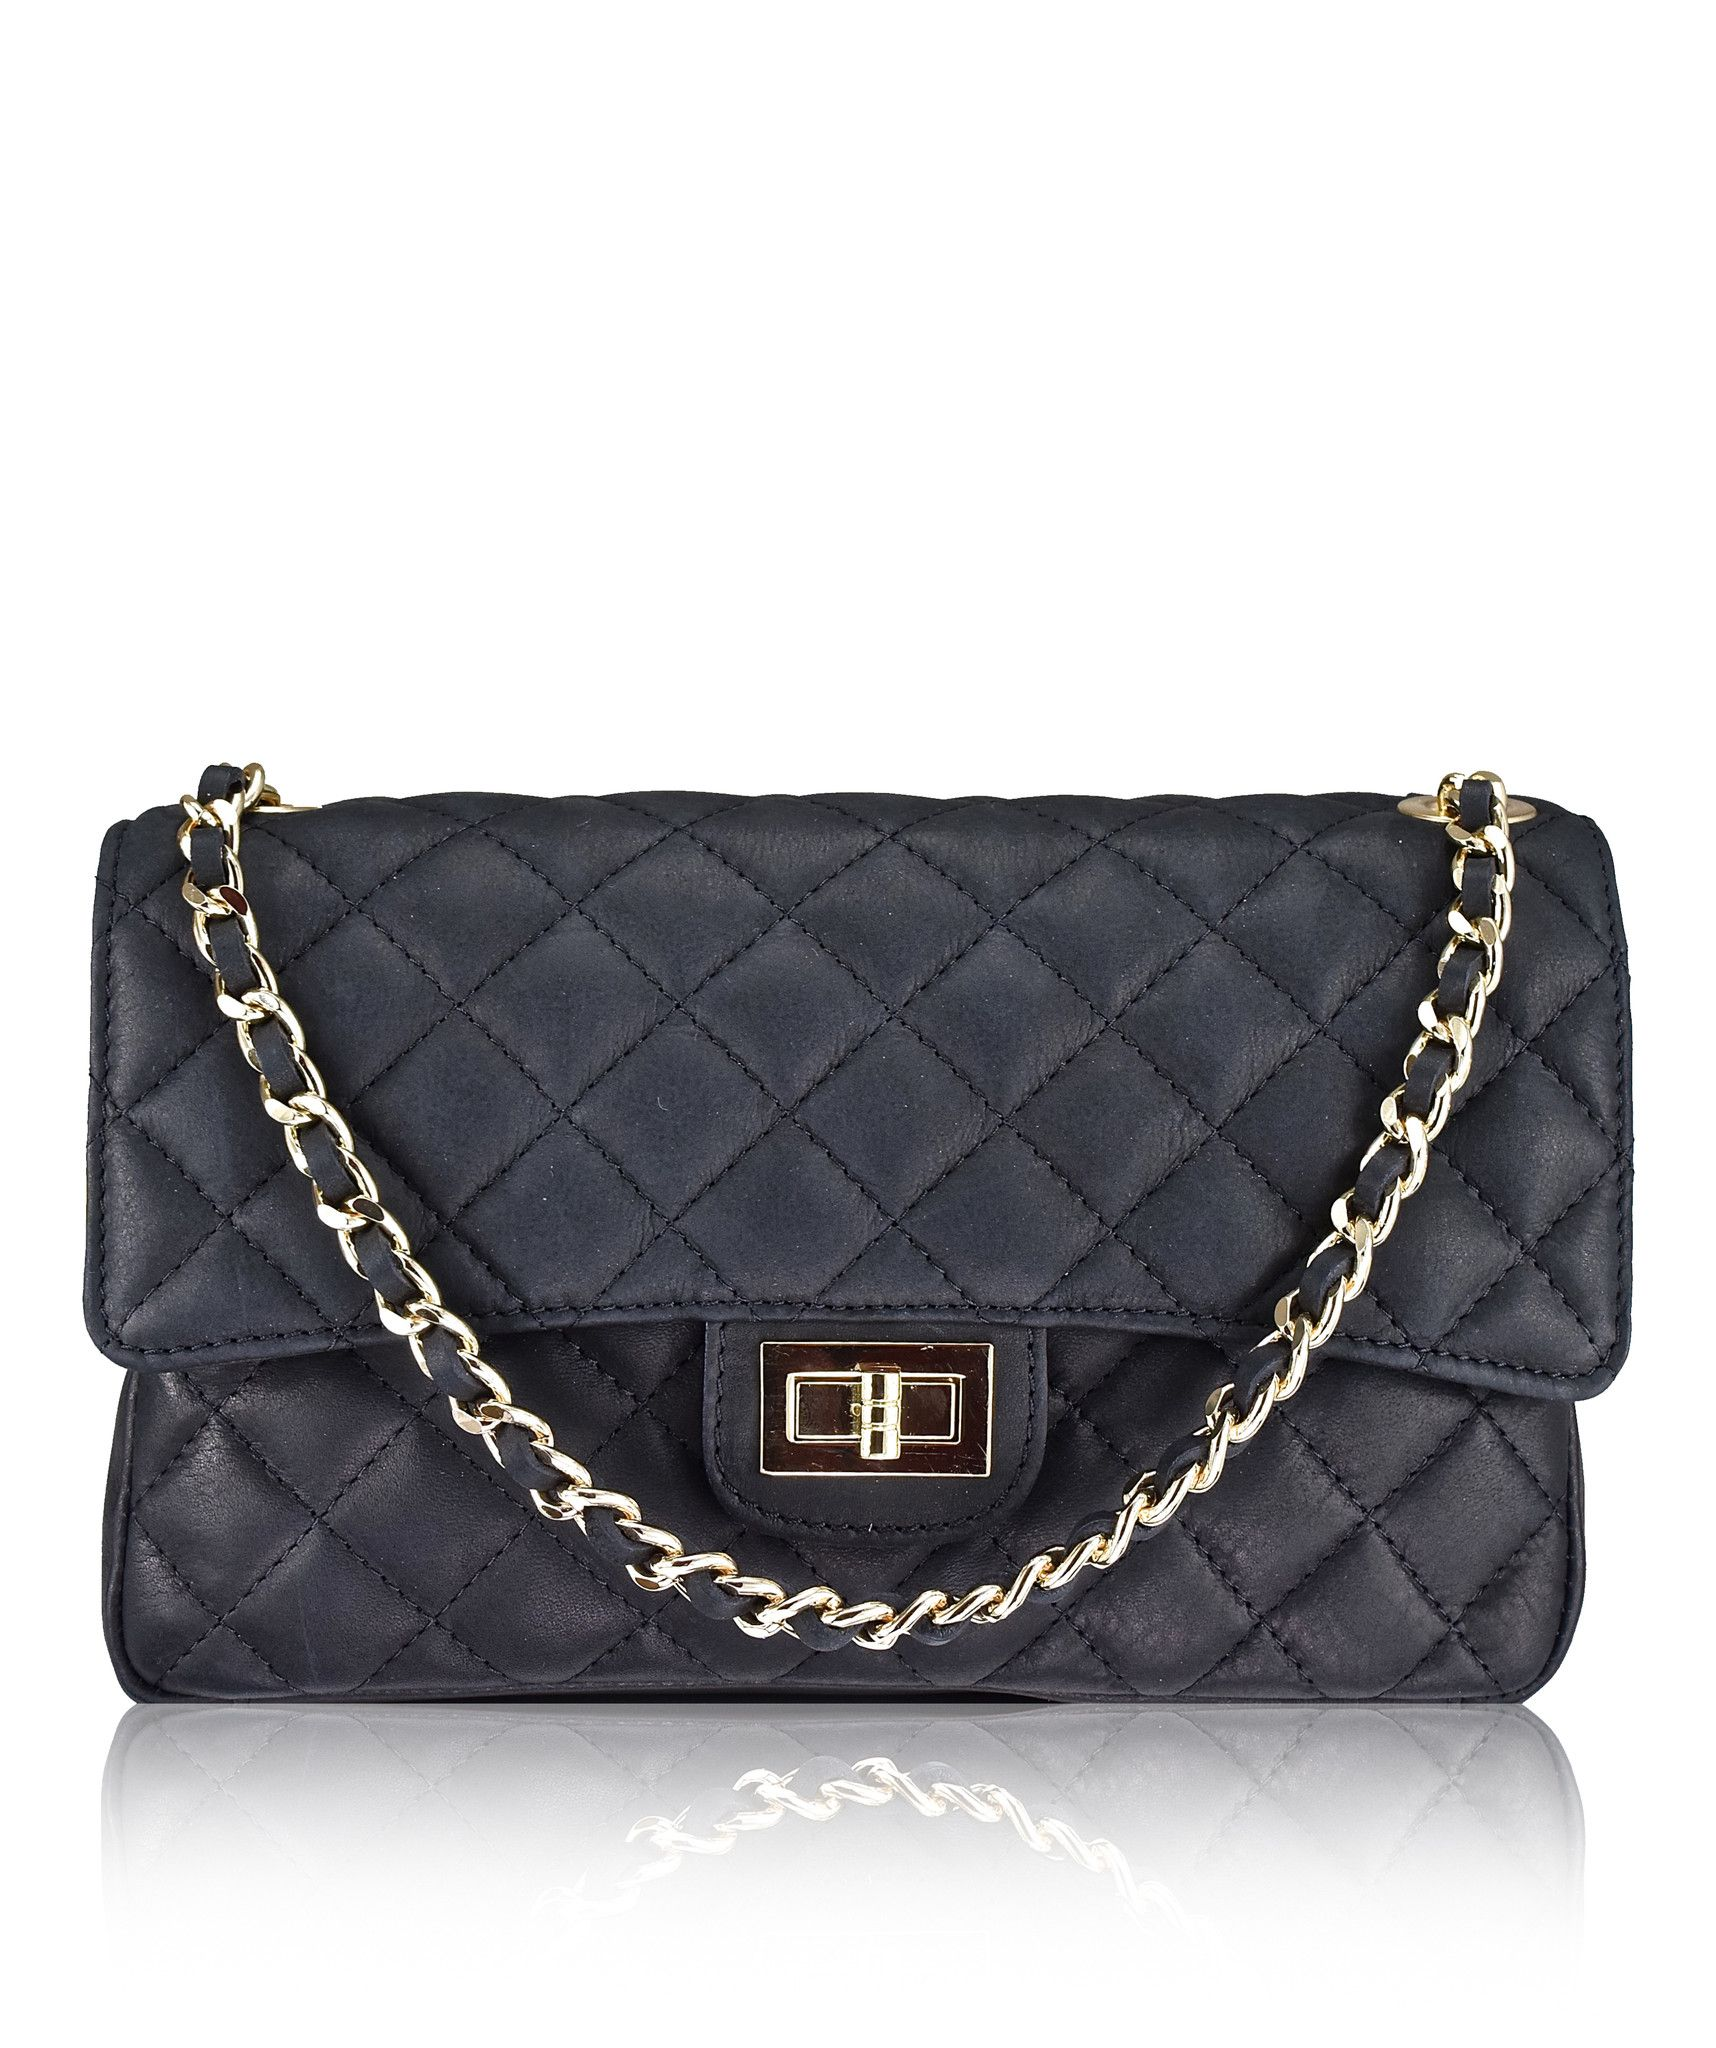 Stretto Medium Black Chanel Style Italian Quilted Leather Handbag From Florence Collection